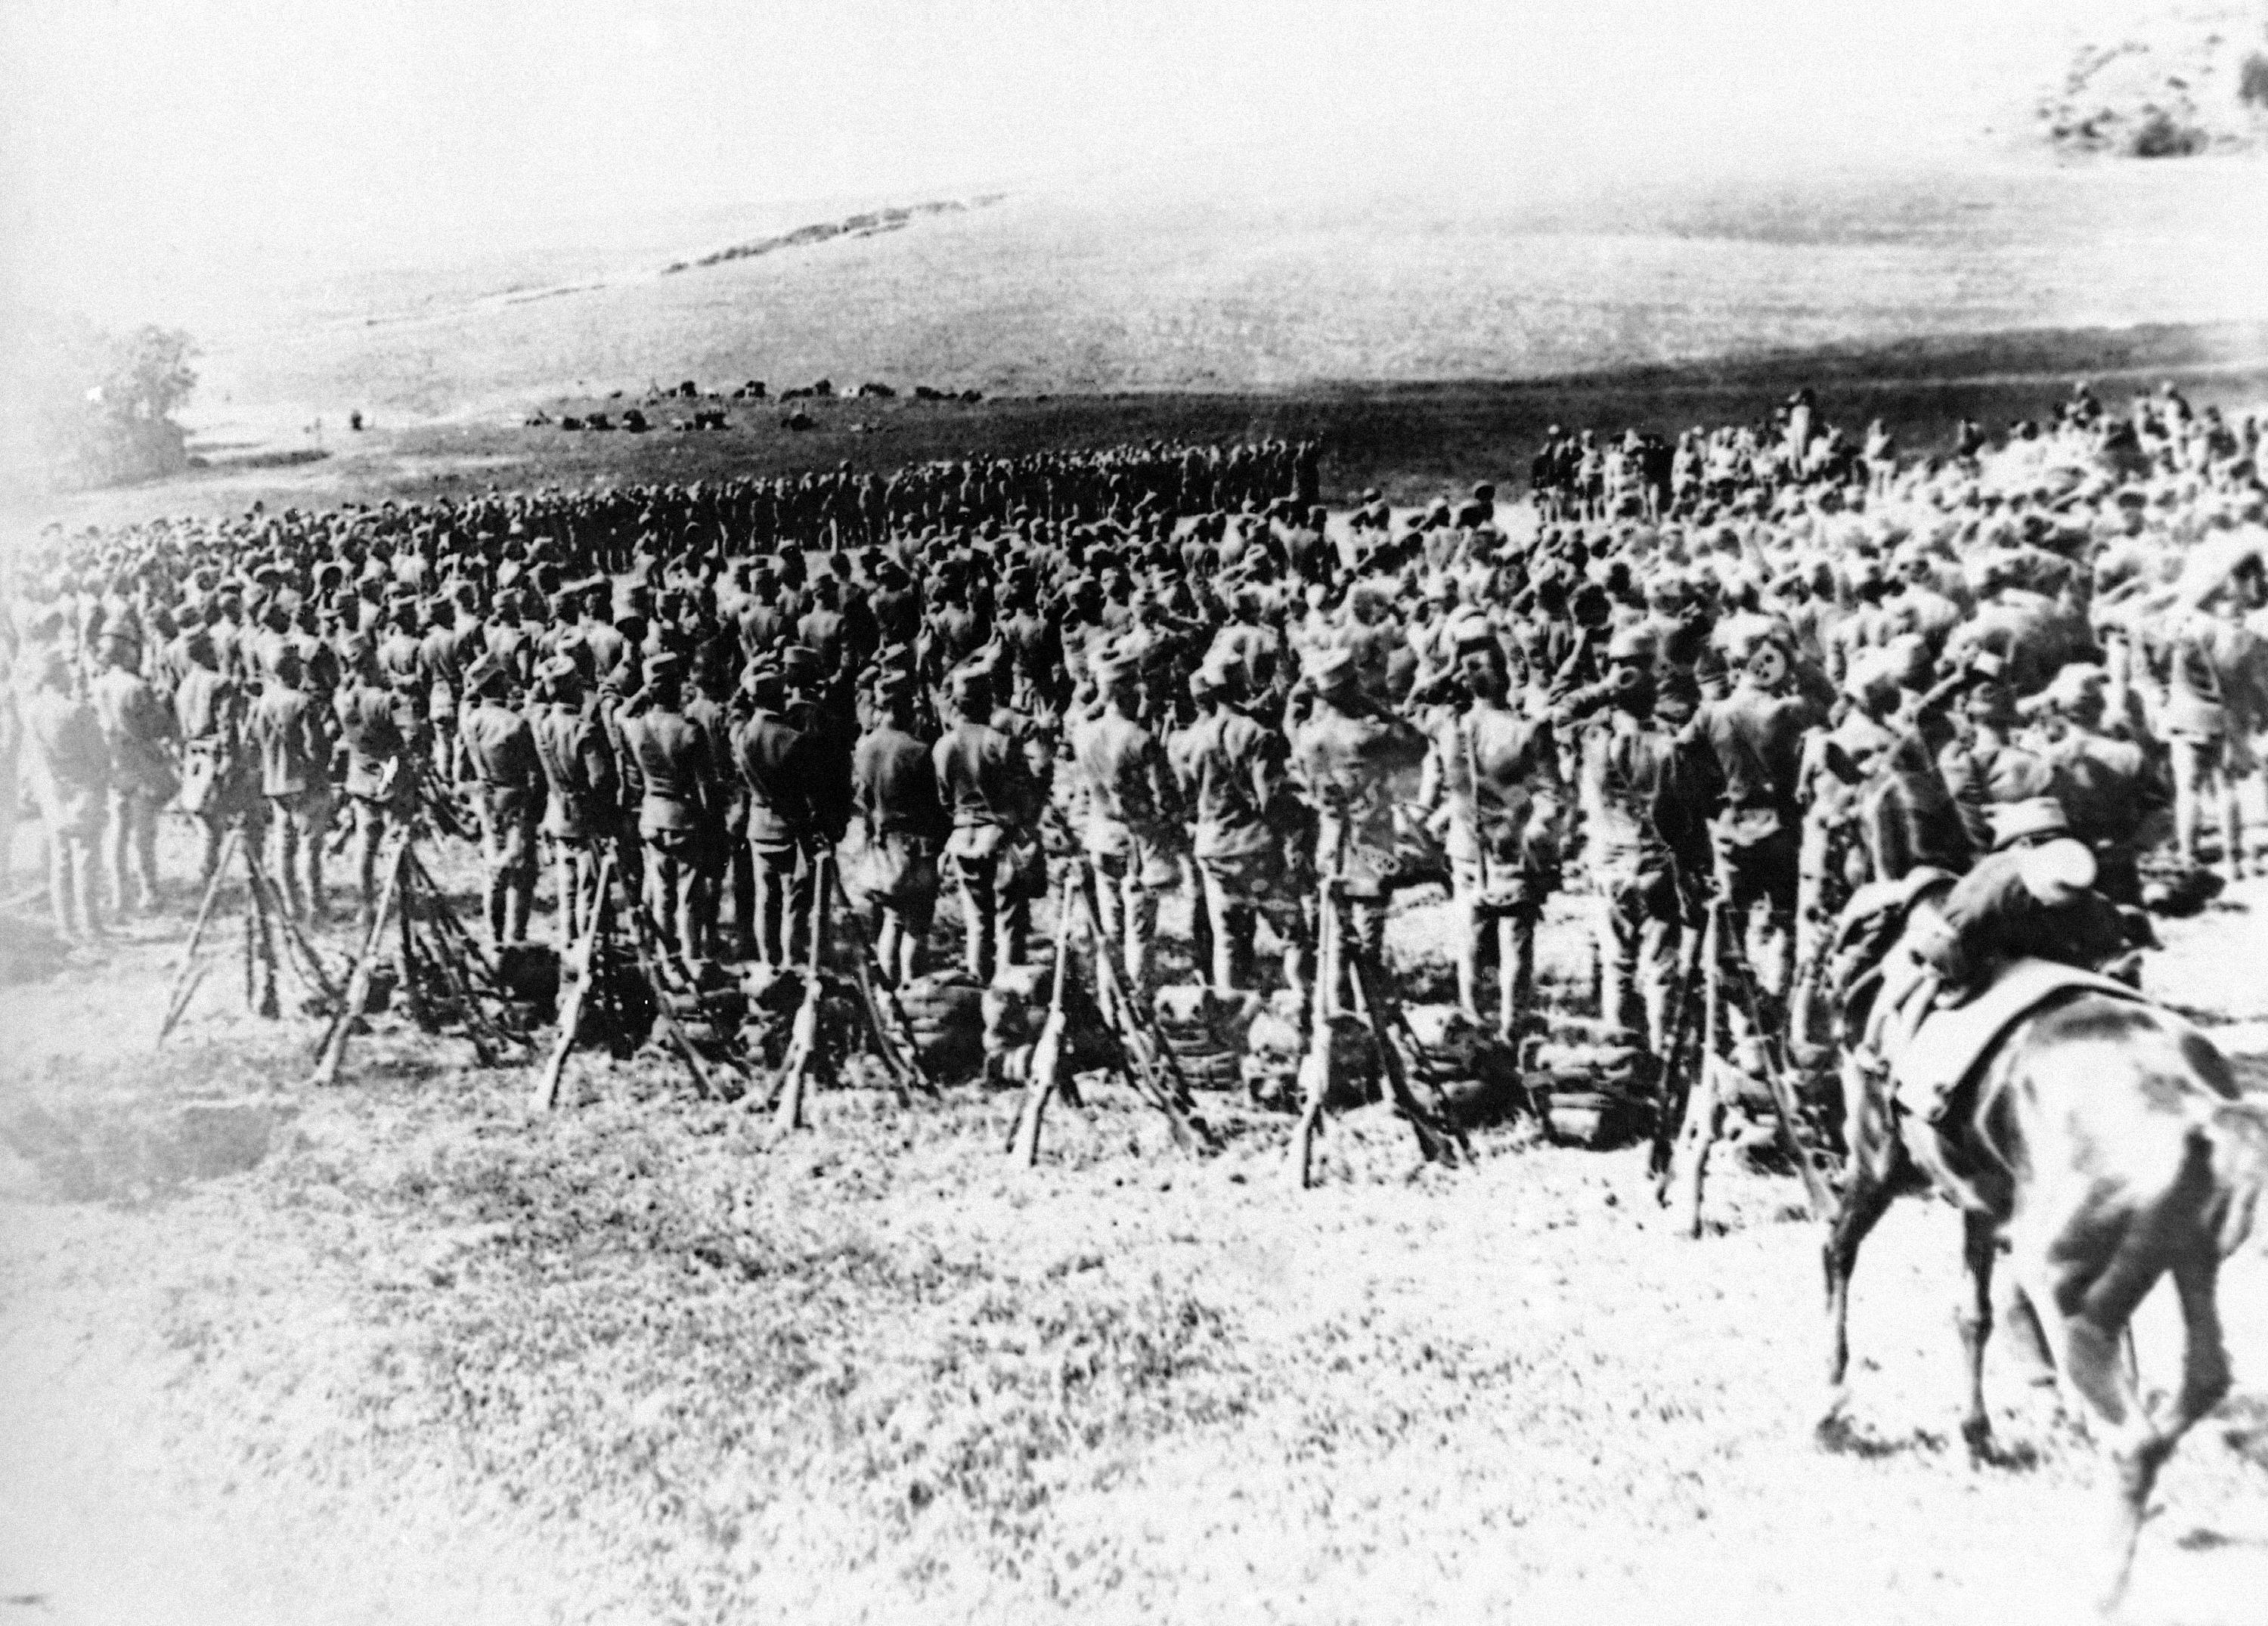 42 OF 100: In this undated file photo, troops are mobilized on the bank of the Danube River across from Belgrade during World War I. Austrian forces captured the Serbian capitol on Oct. 9, 1915.